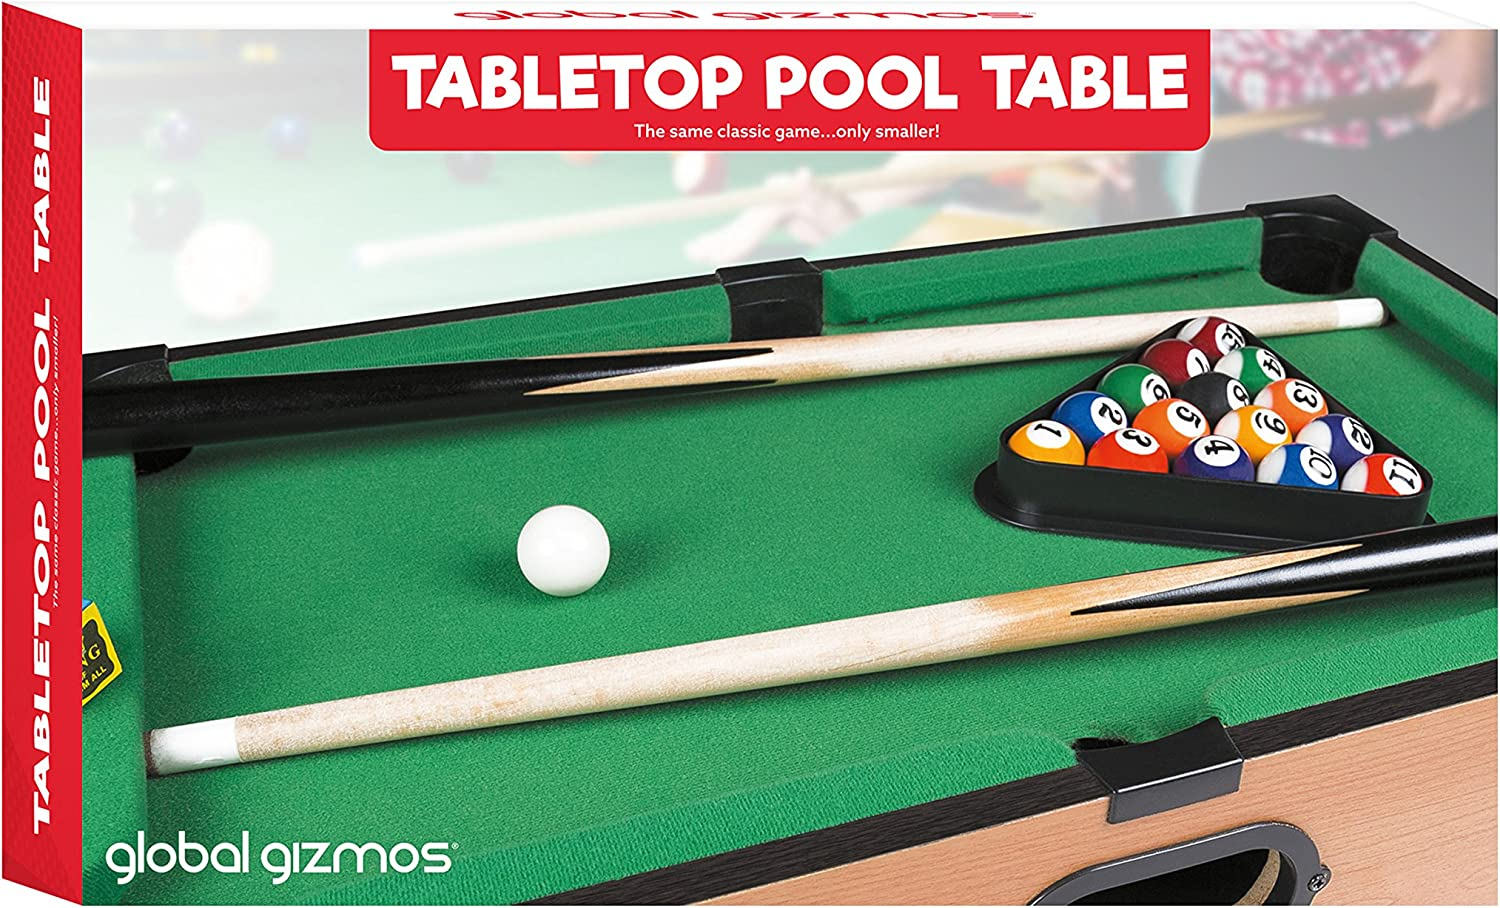 Global Gizmos 50 x 30 cm Deluxe Table Top Pool Game/Snooker Table Game by Global Gizmos: Amazon.es: Juguetes y juegos